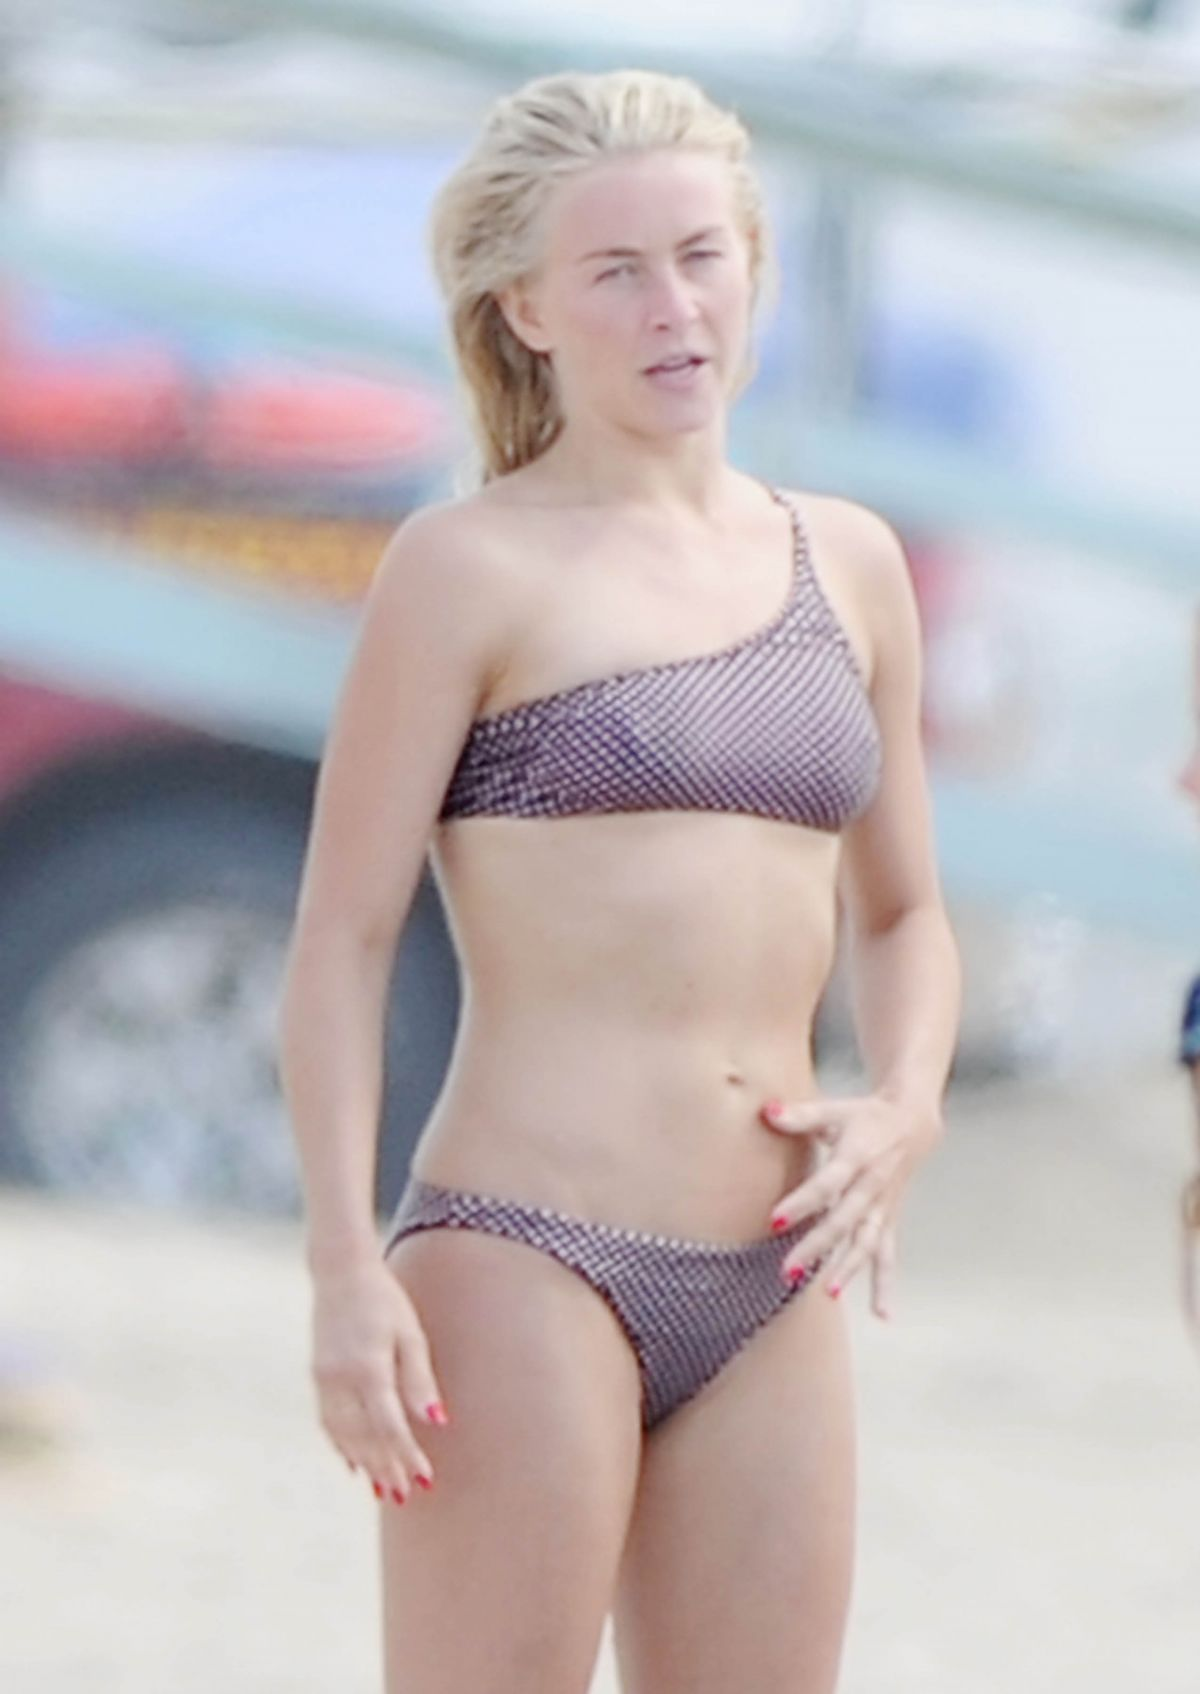 Bikini Julianne Hough naked (98 photos), Sexy, Is a cute, Instagram, braless 2015